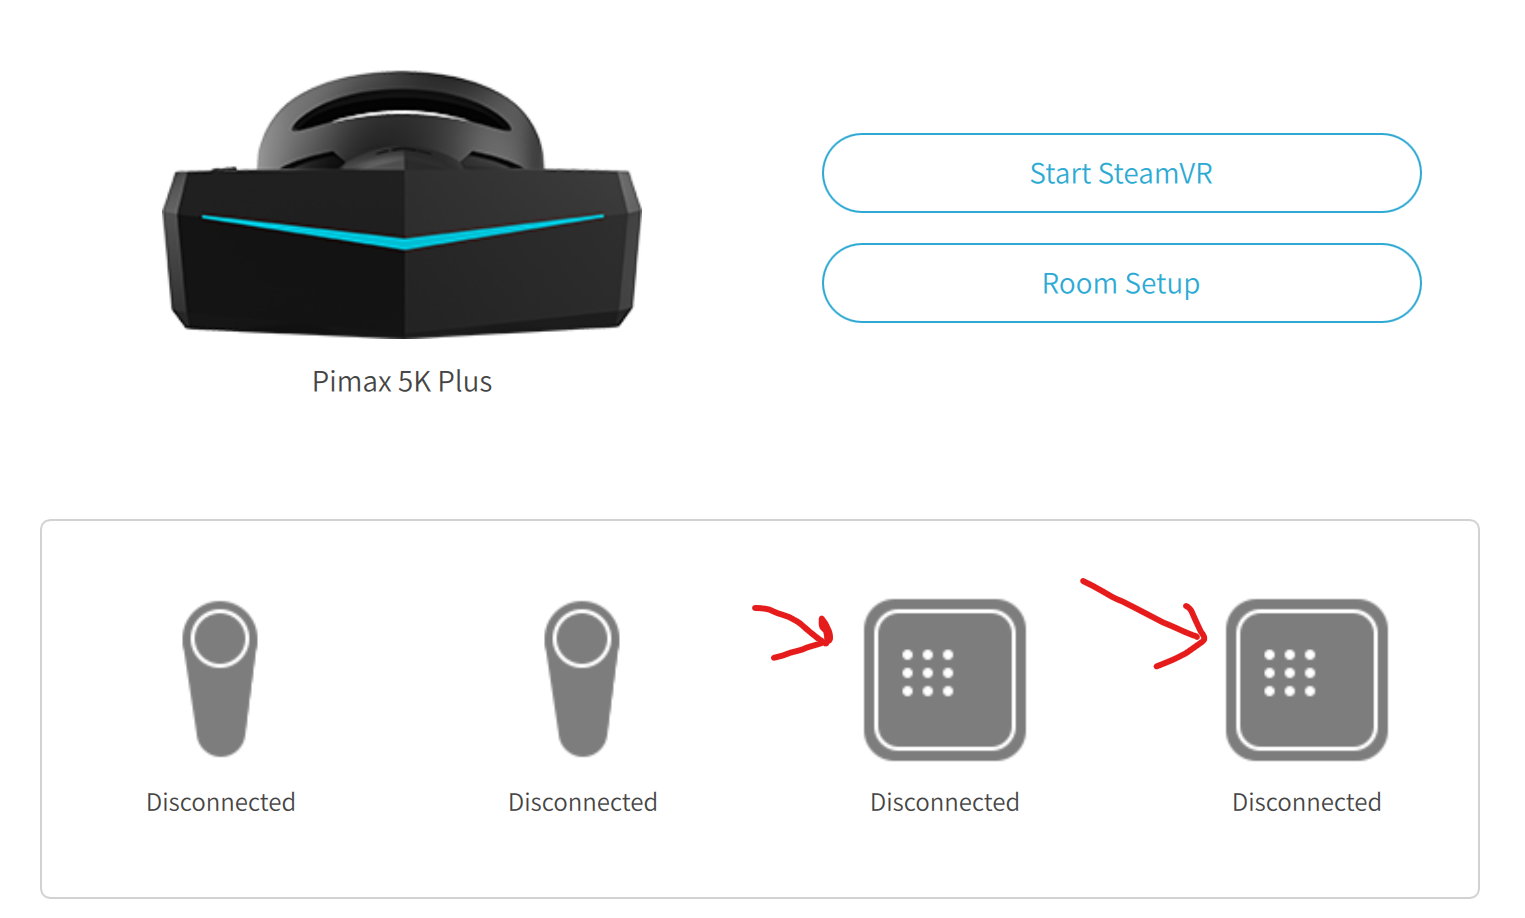 Trackers not working with Pimax after new SteamVR Update